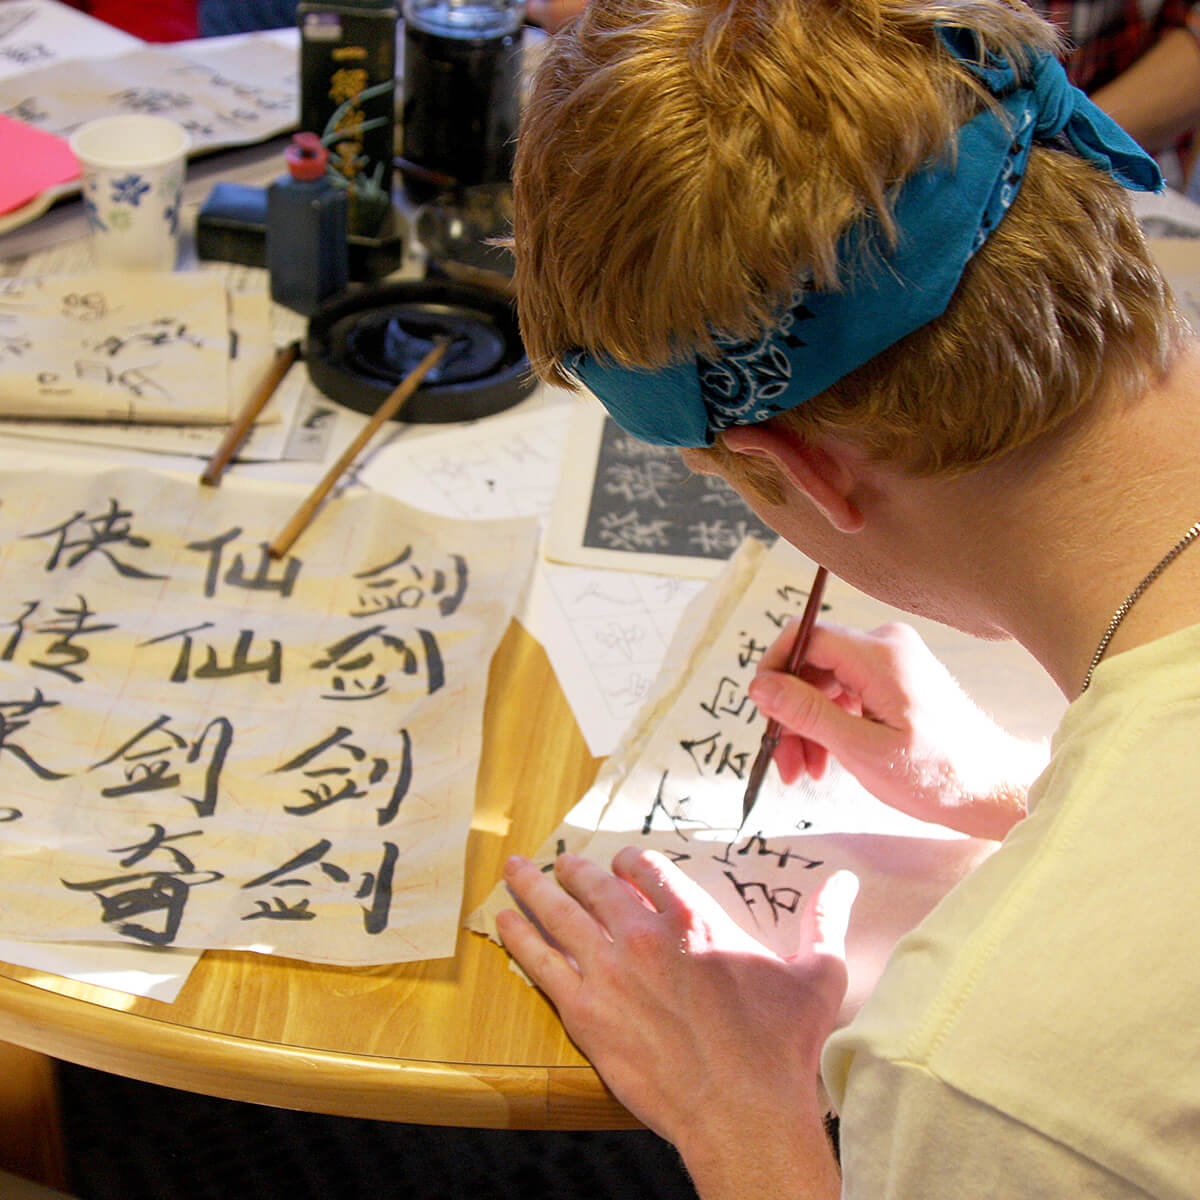 Picture of a student writing Chinese with a brush and ink.